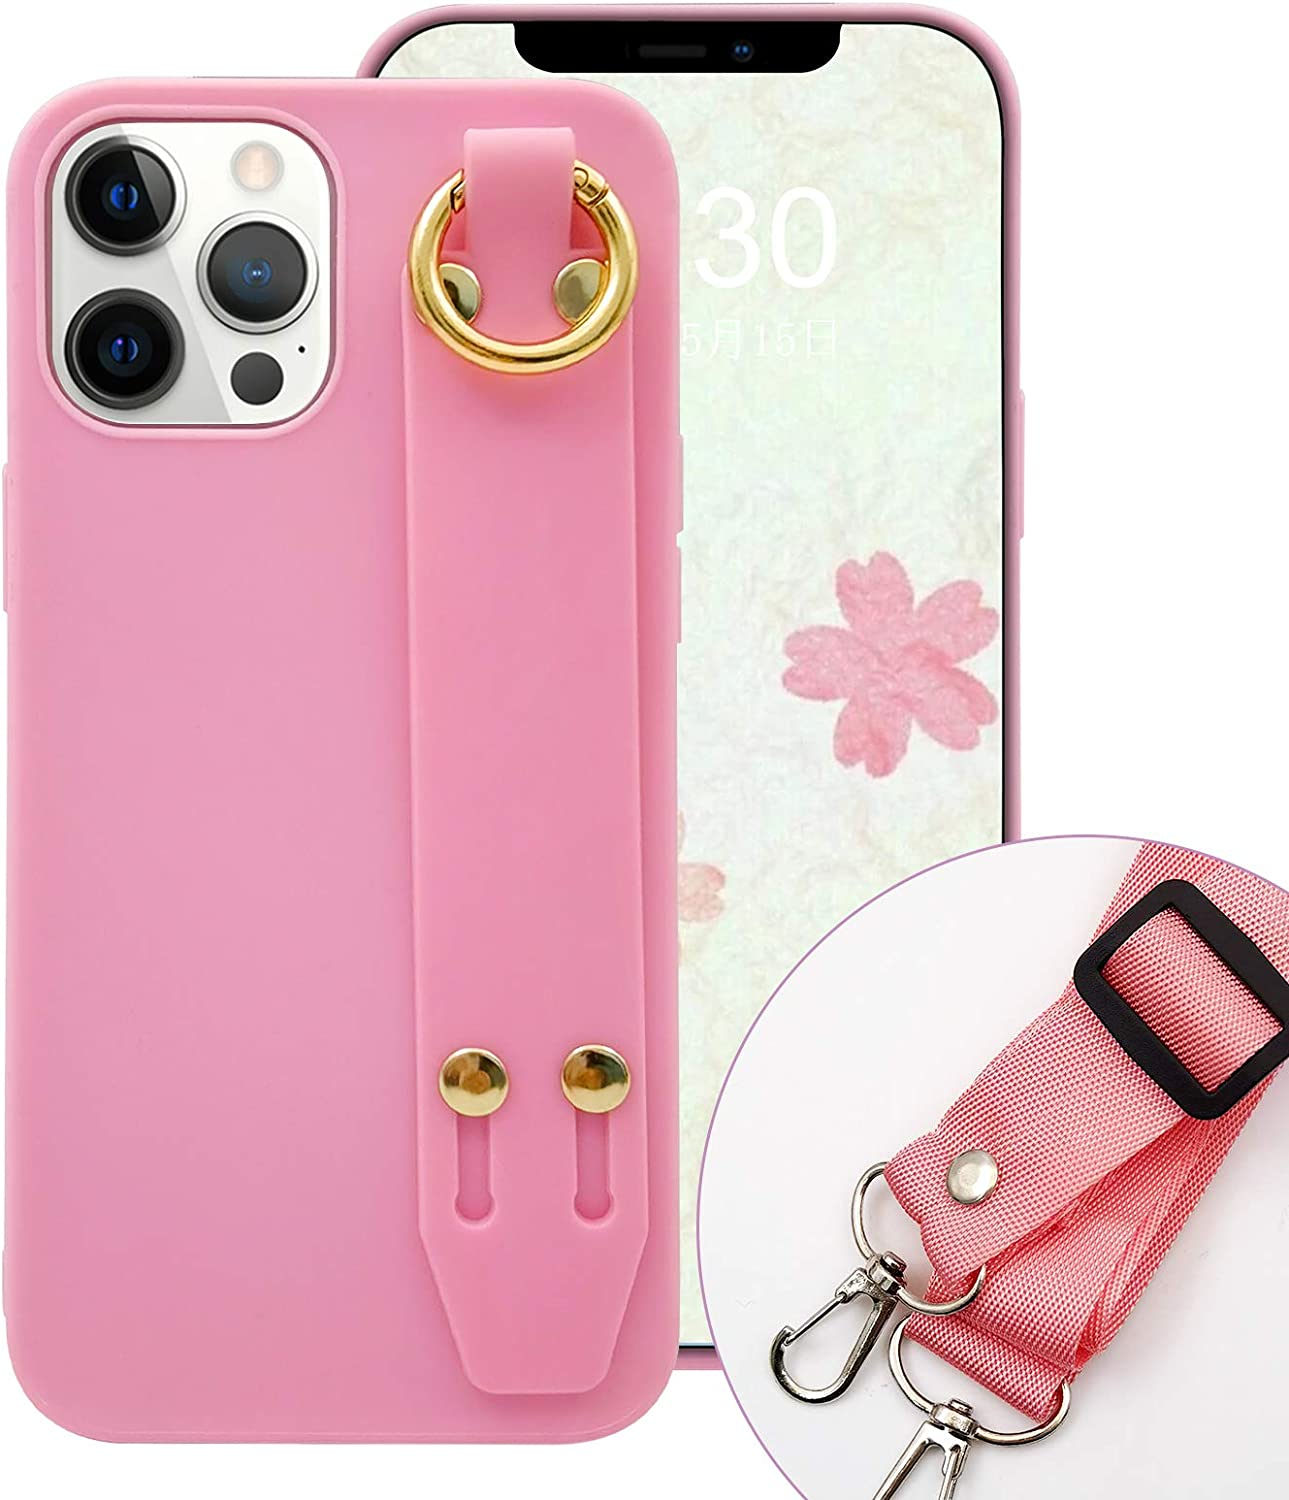 Omorro for iPhone 12 Pro Kickstand Case, Soft Silicon Gel Ring Holder Hand Strap Crossbody Adjustable Detachable Necklace Slim Flexible TPU Shockproof Protective Elegant Cover Phone Case Pink